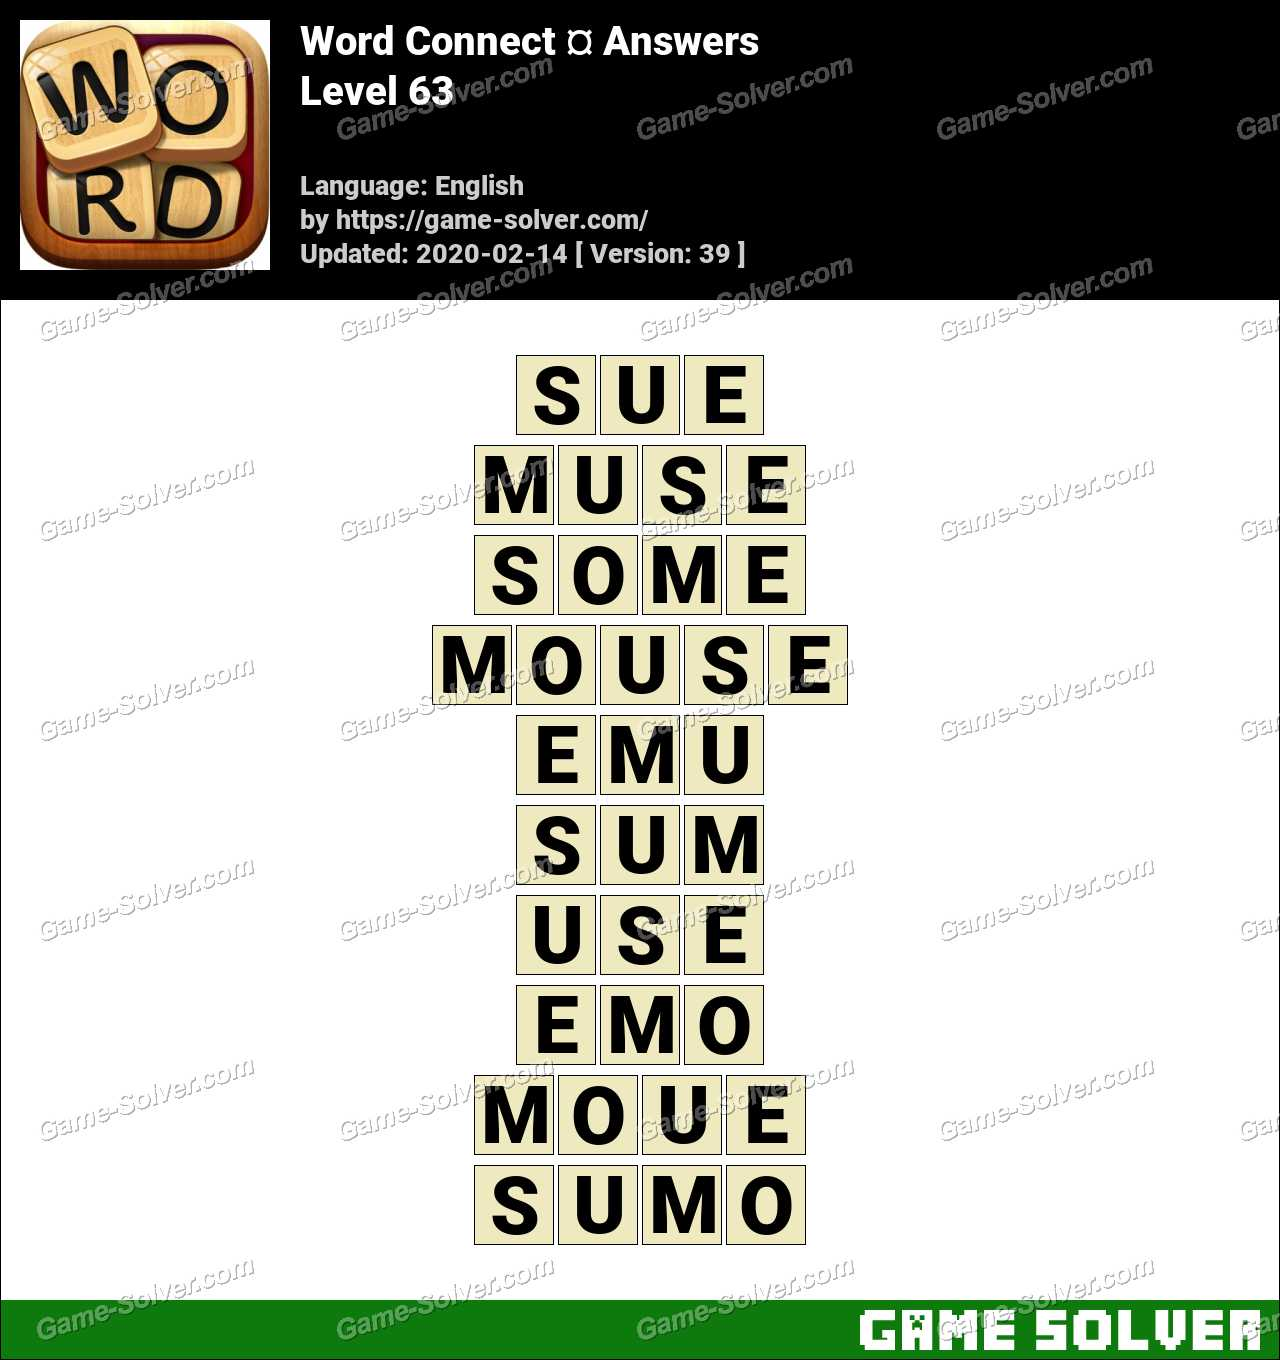 Word Connect Level 63 Answers